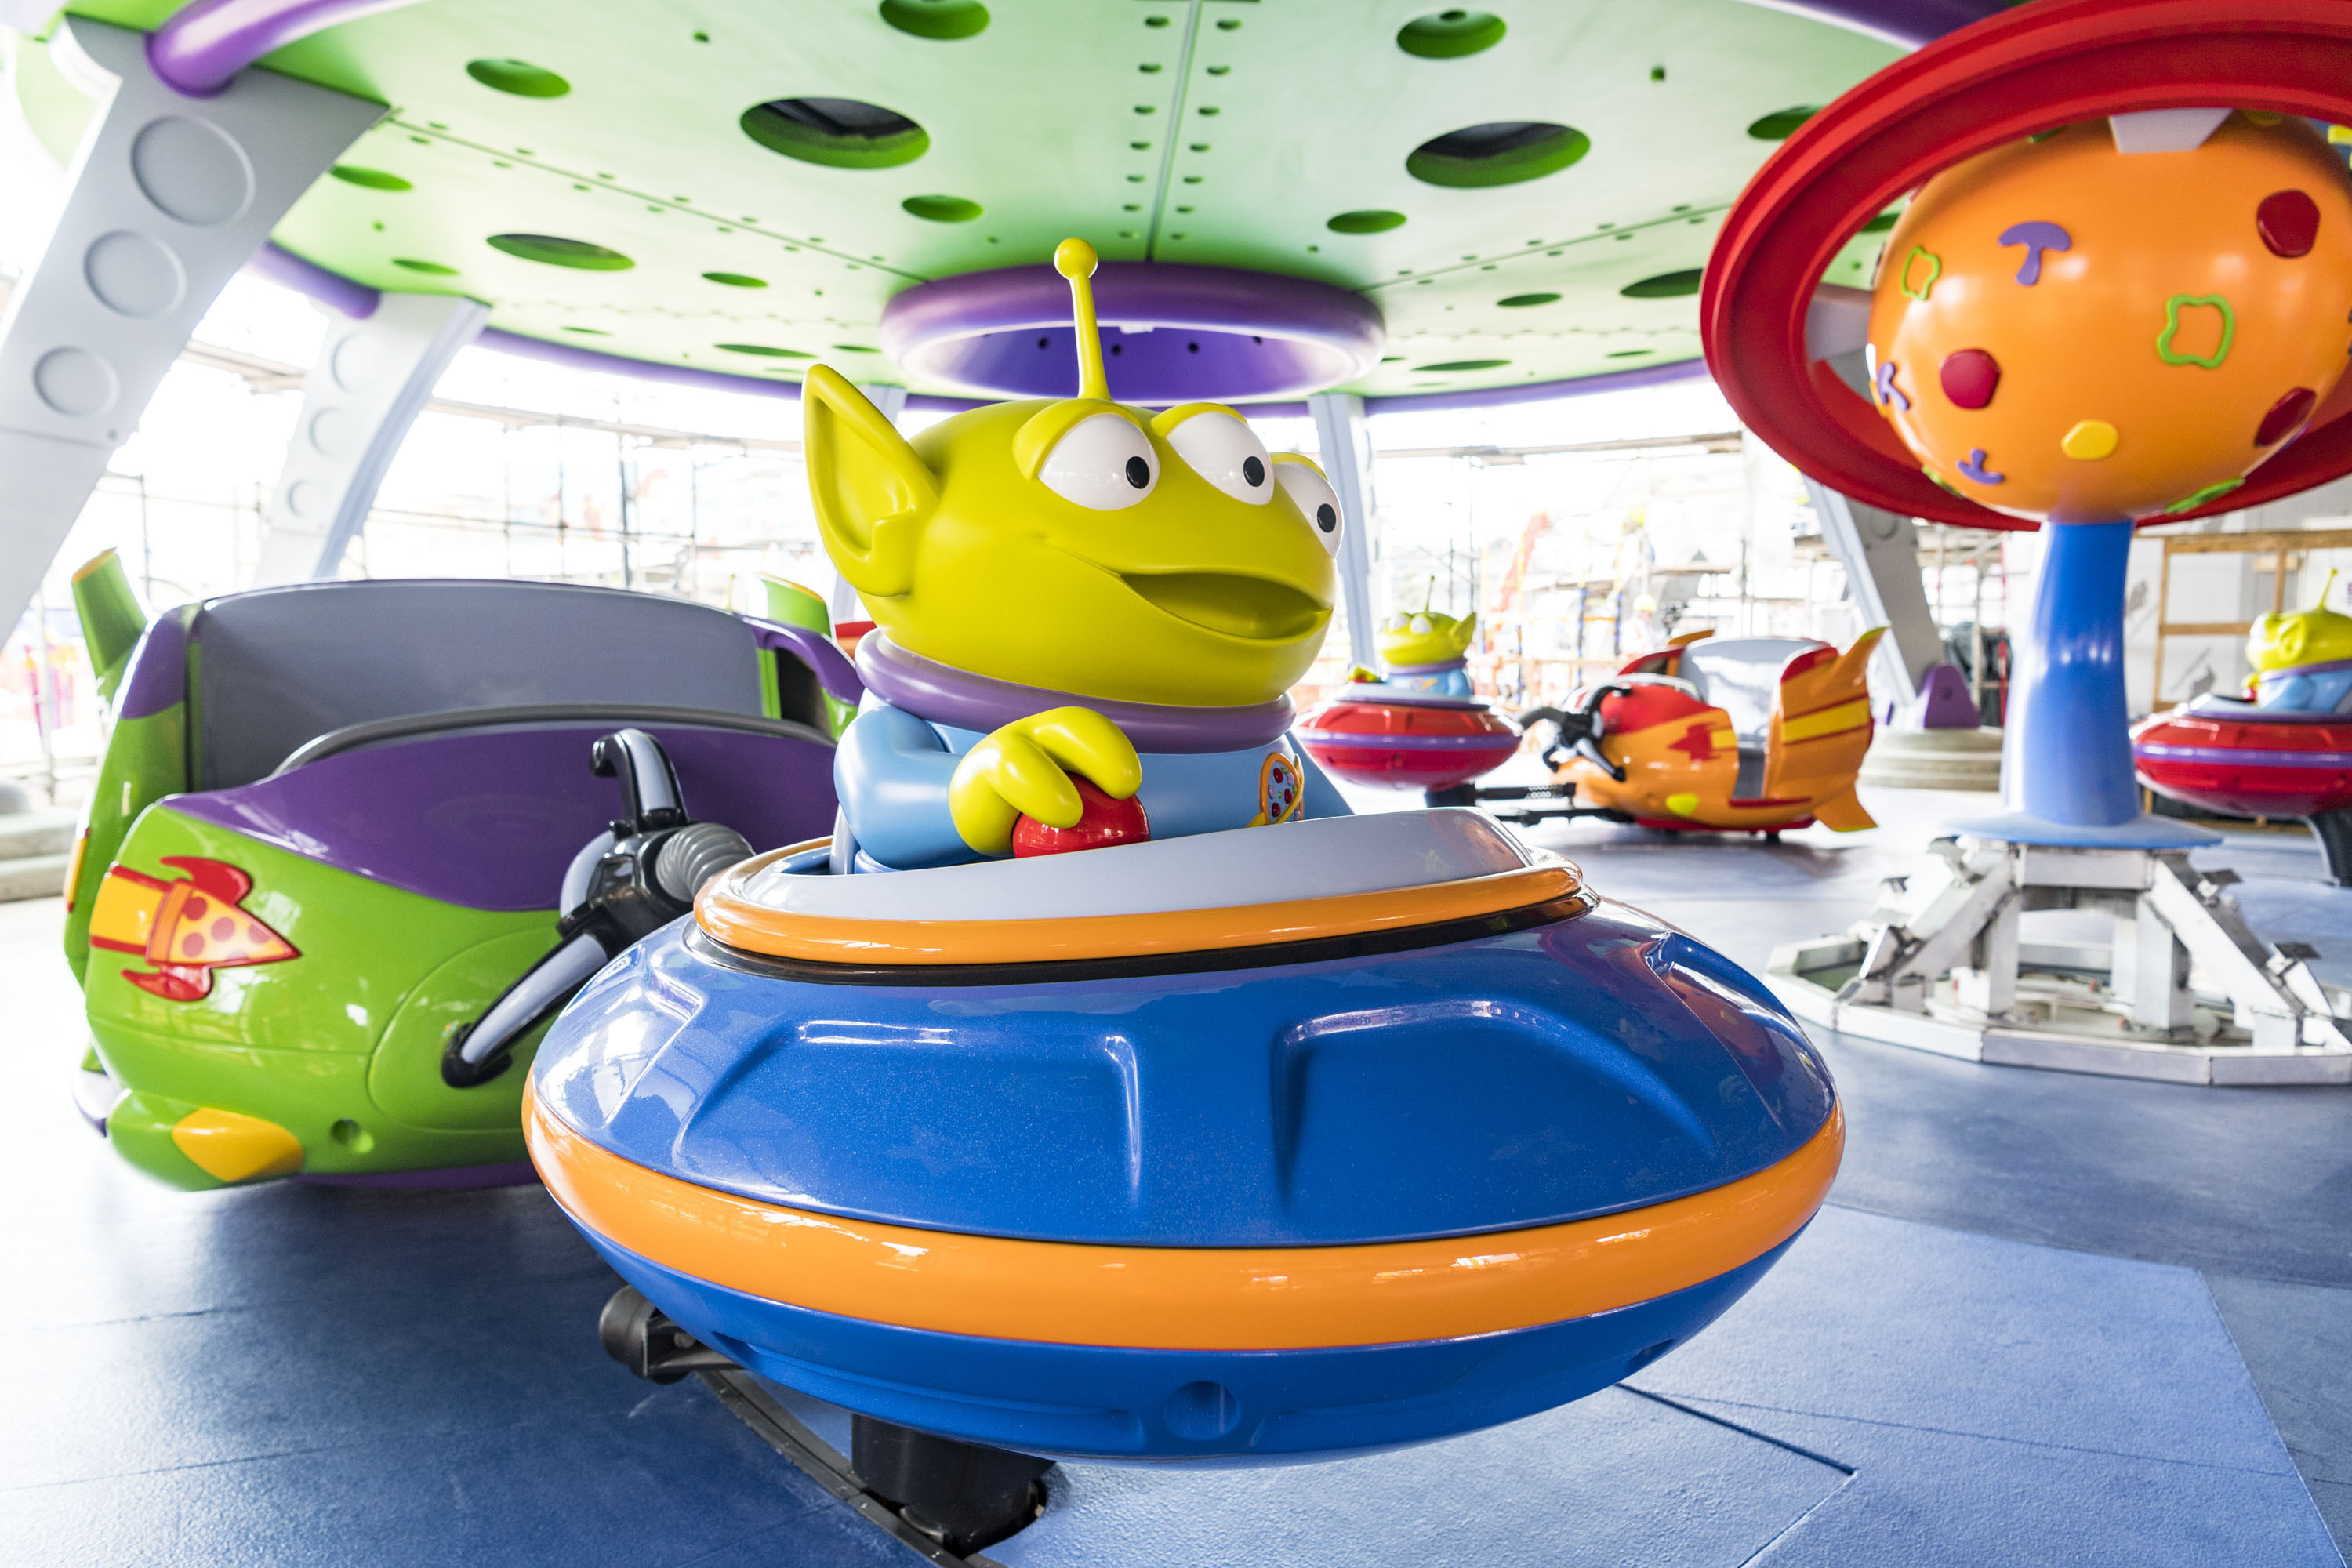 """Slide 3 of 15: Little green aliens from the hit Disney●Pixar """"Toy Story"""" films pilot toy rocket ships in the Alien Swirling Saucers attraction that will be part of the new Toy Story Land opening June 30, 2018, at Disney's Hollywood Studios. The out-of-this-world attraction is inspired by Andy's toy play set from the Pizza Planet restaurant. With multi-colored lighting and sound effects from throughout the galaxies, Walt Disney World guests will swirl and whirl in the toy rocket ships while the aliens try to get captured by """"The Claw"""" that hangs overhead. (Matt Stroshane, photographer)"""